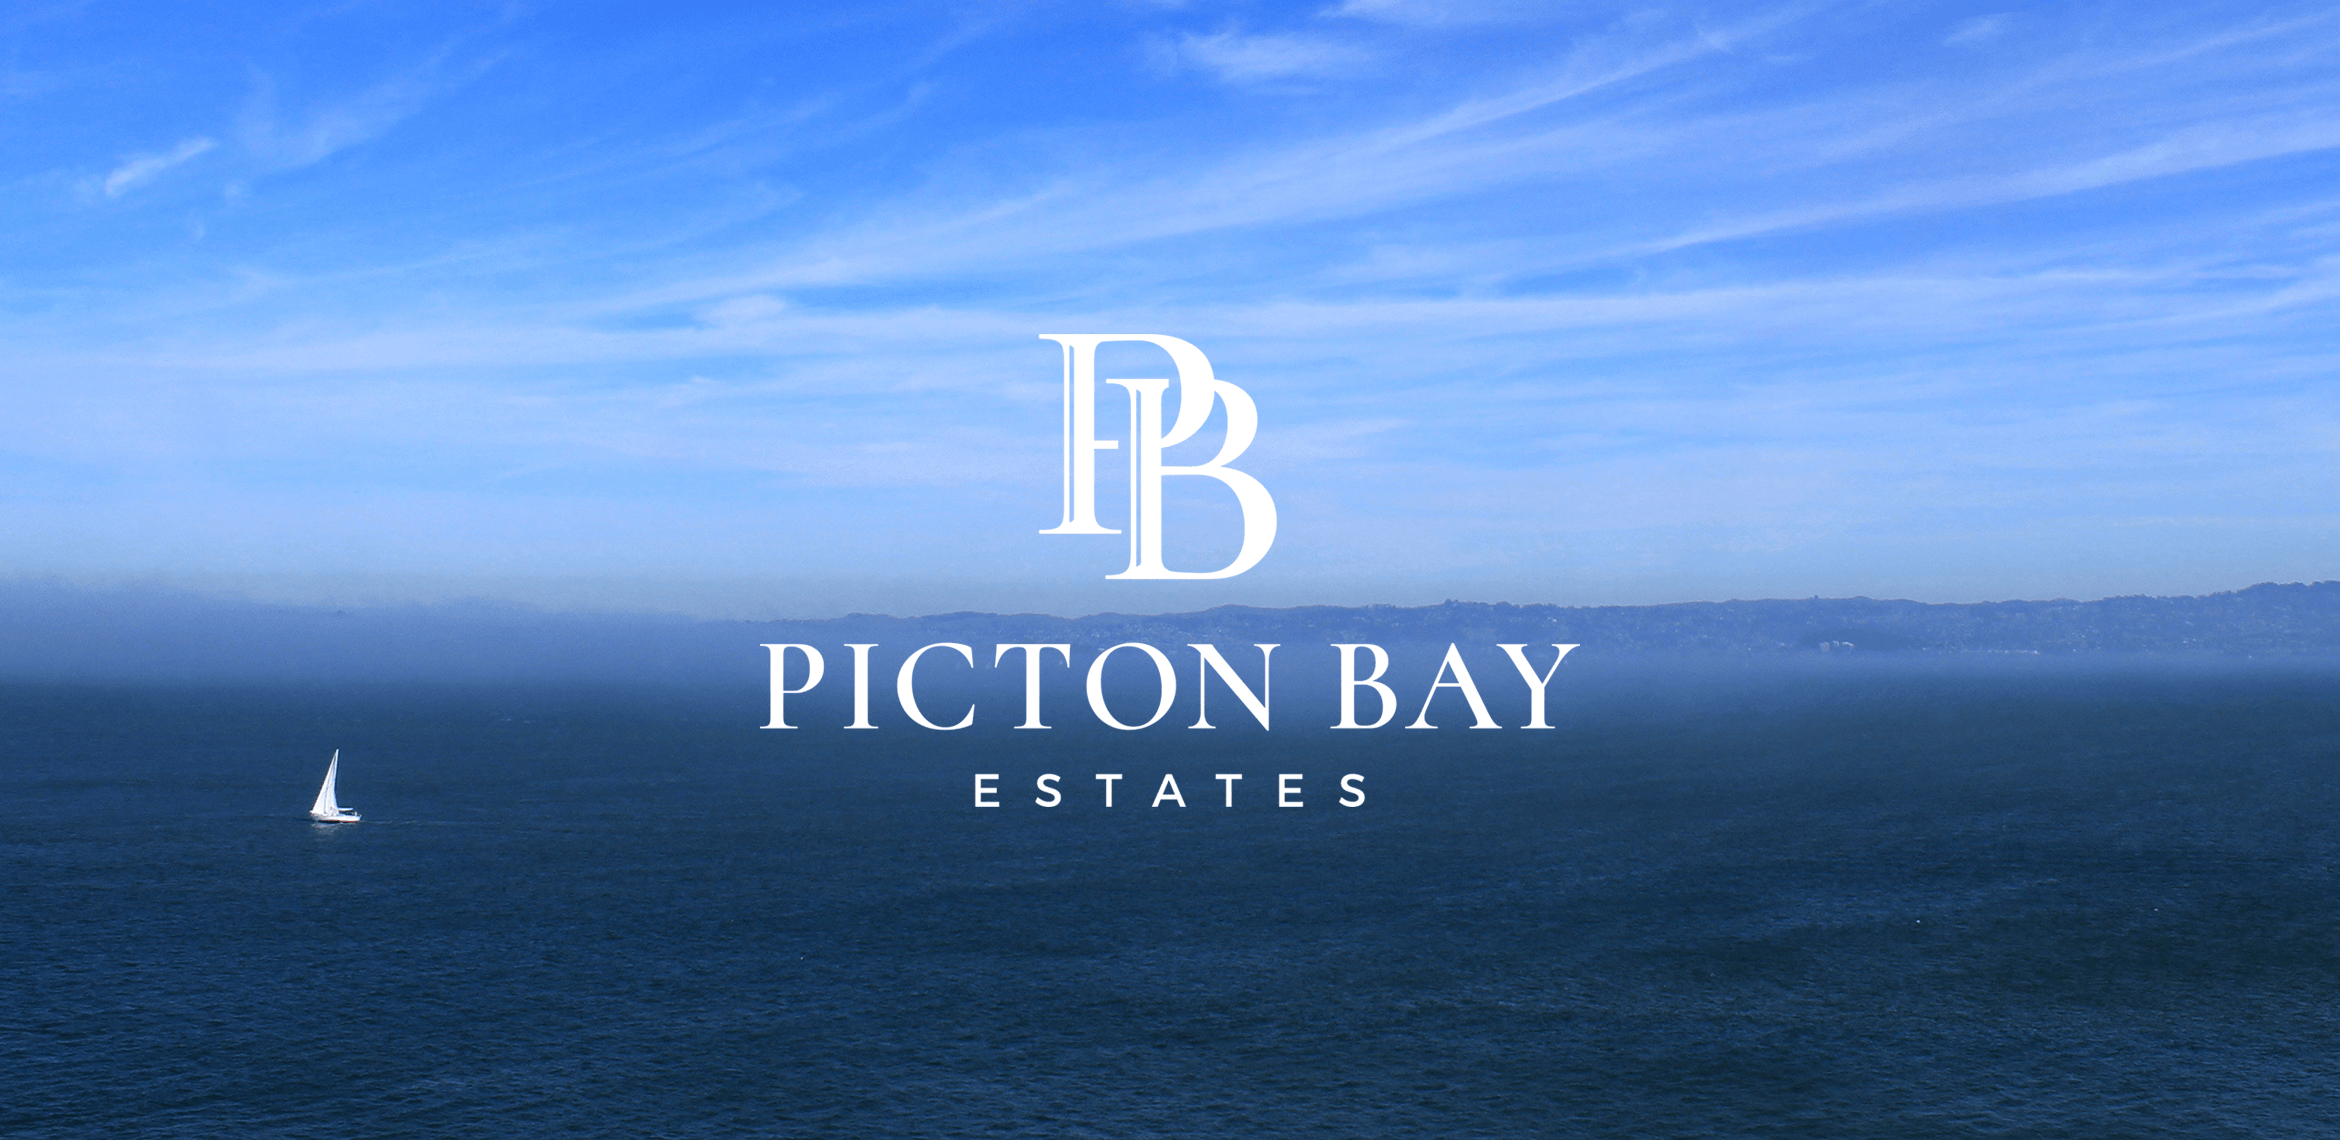 Jordan_Website_PictonBay_1-compressor